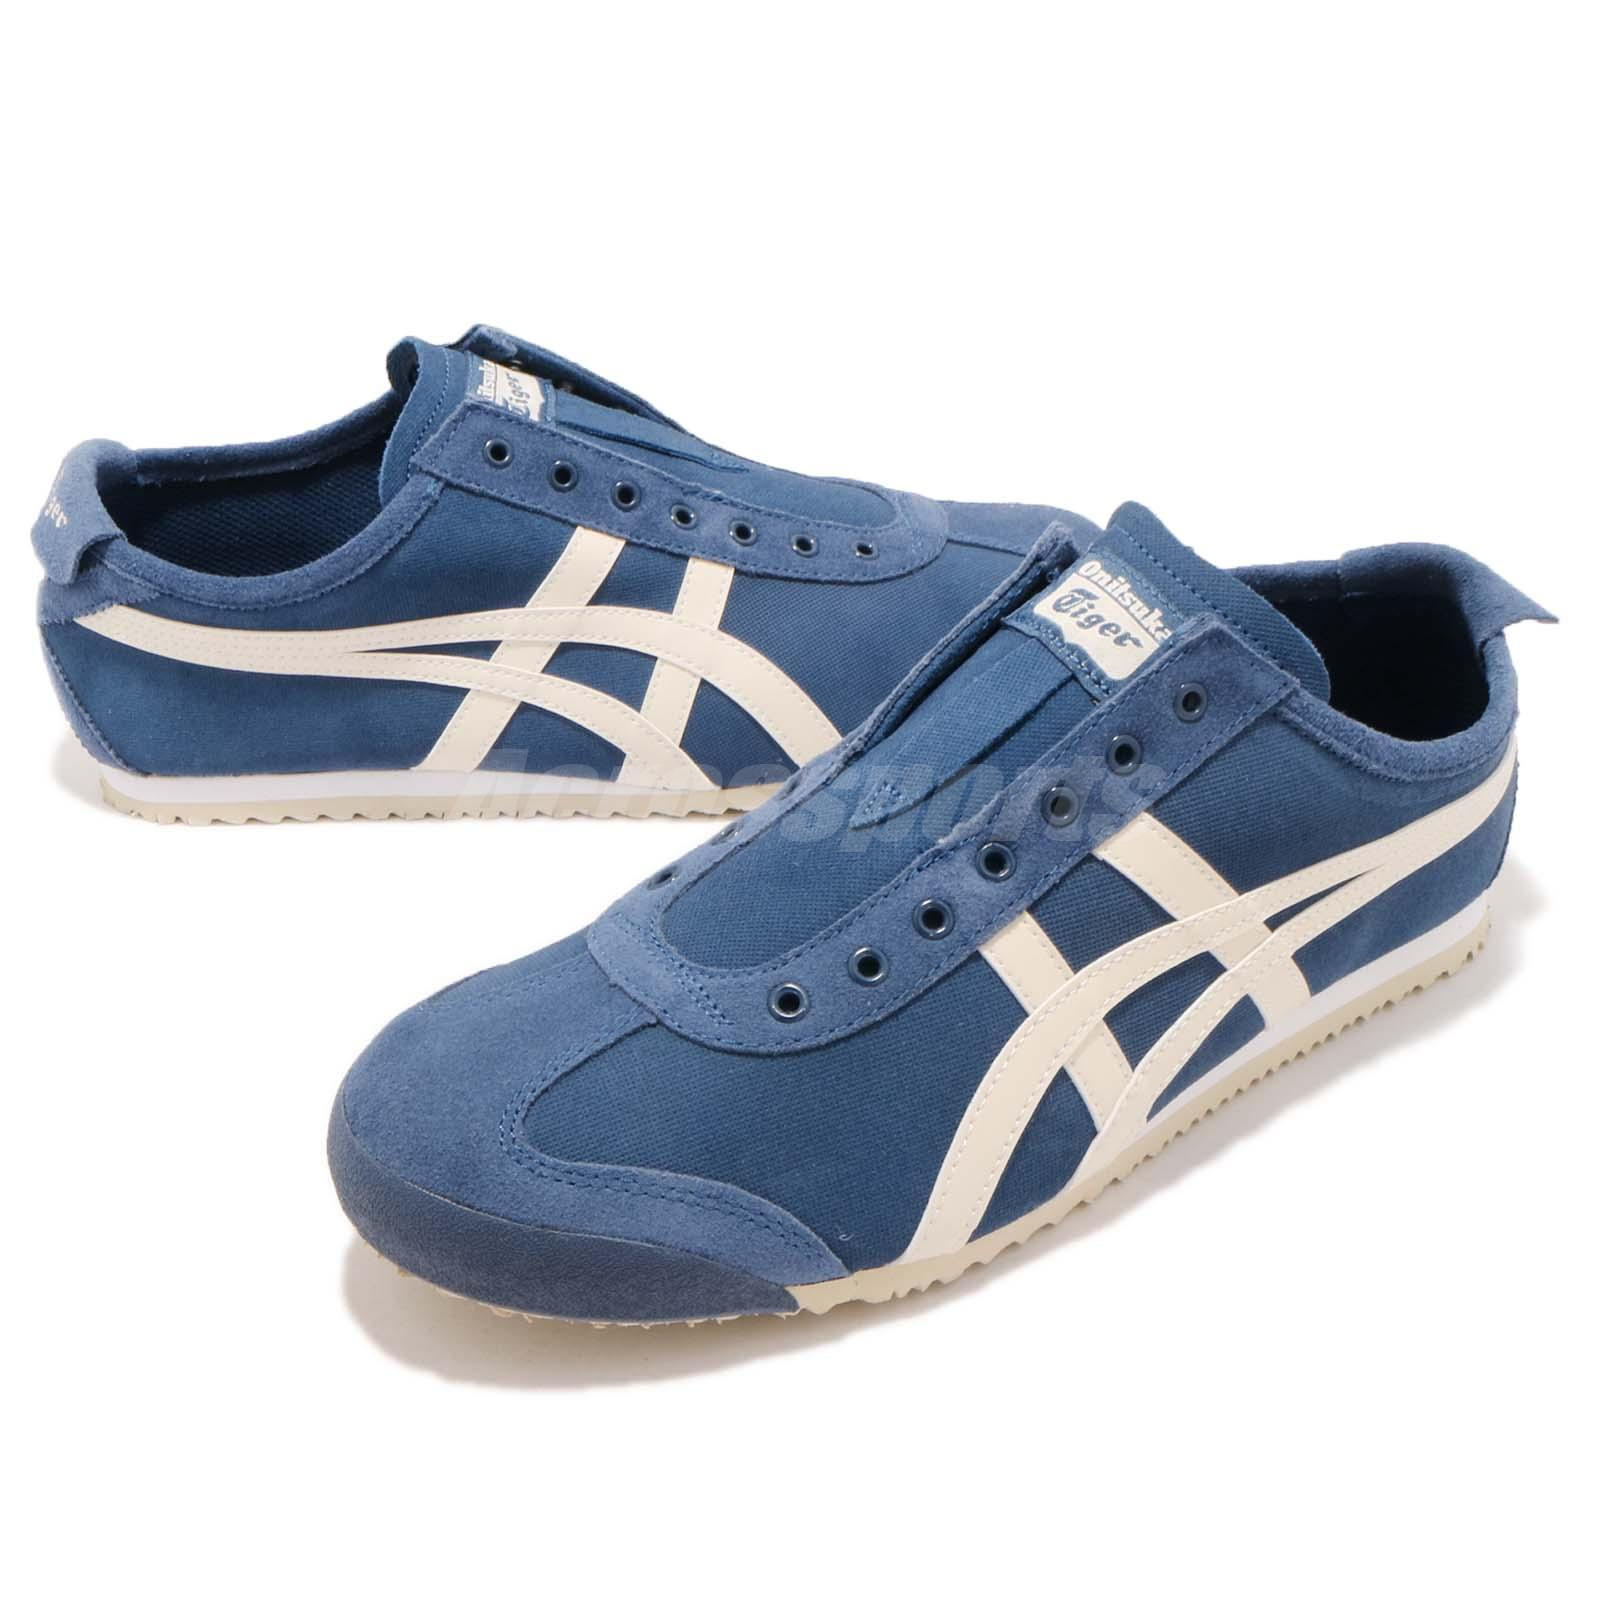 reputable site 86bed 59fe7 Details about Asics Onitsuka Tiger Mexico 66 Slip On Blue Ivory Men Casual  Shoes 1183A042-400